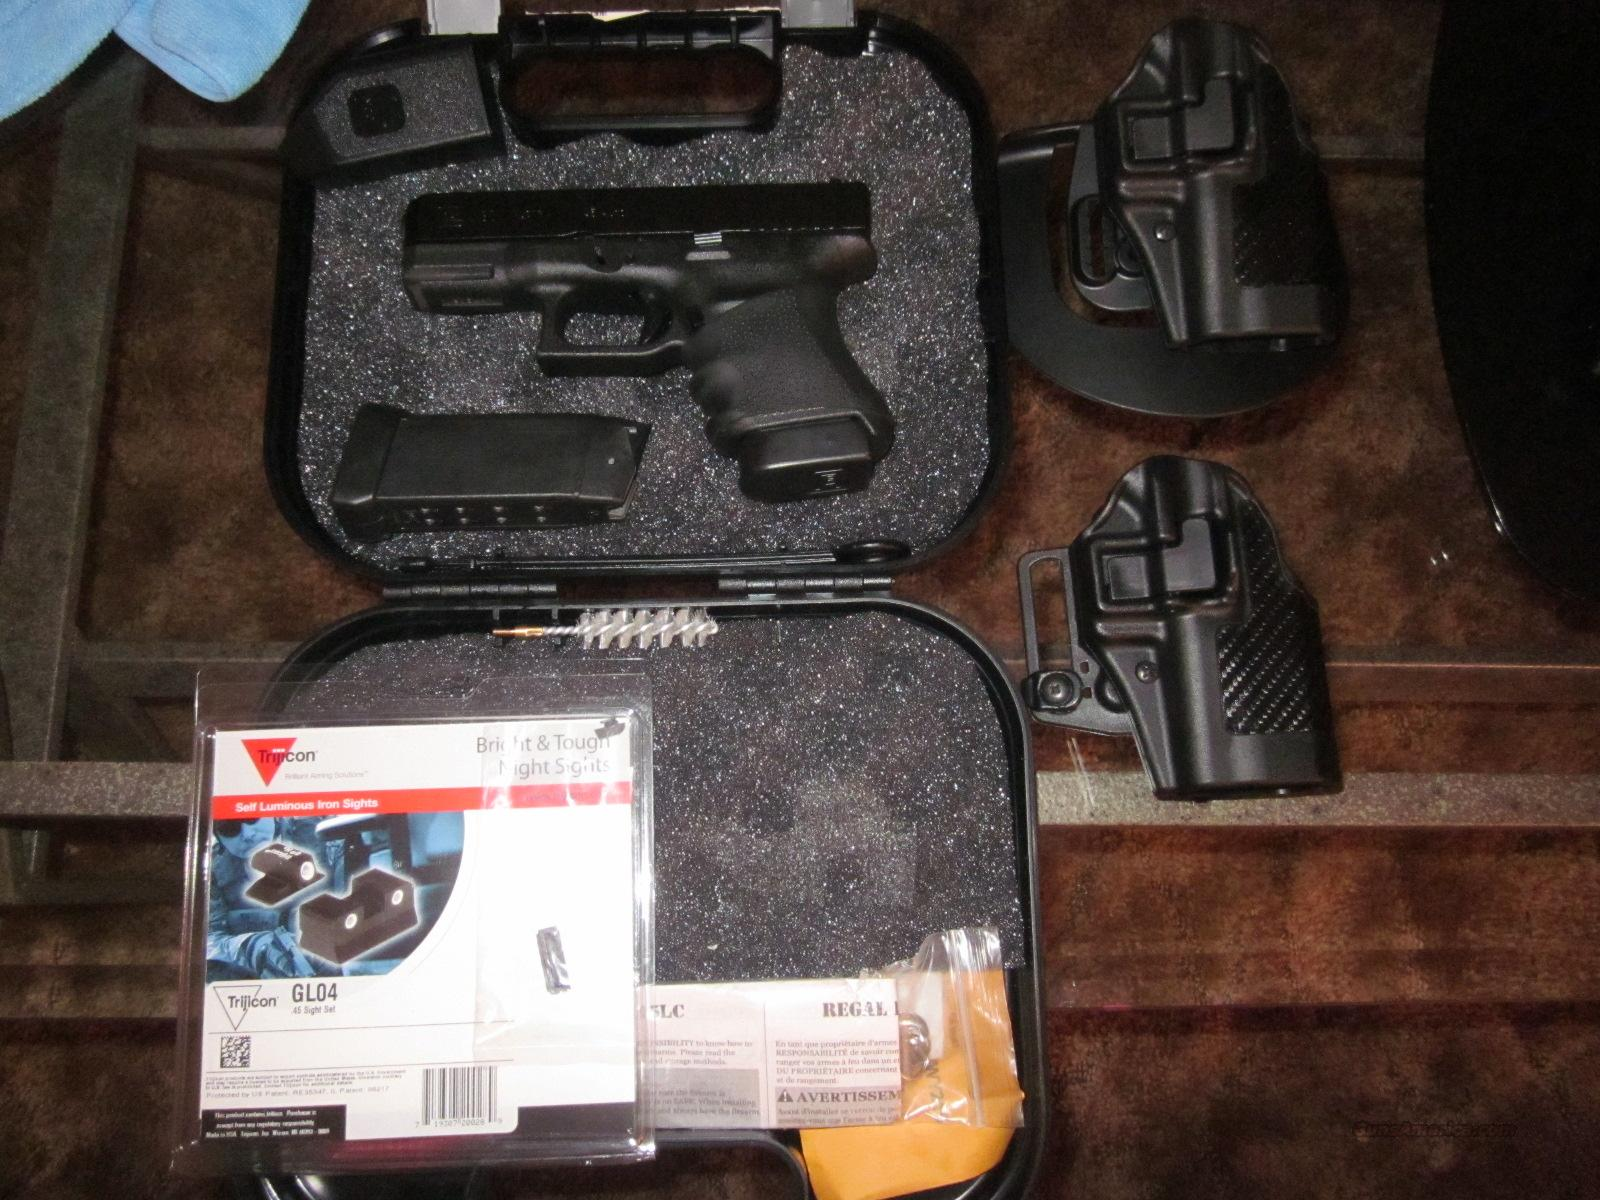 Glock 30 SF W/ 2 new serpas and New Night Sights  Guns > Pistols > Glock Pistols > 29/30/36